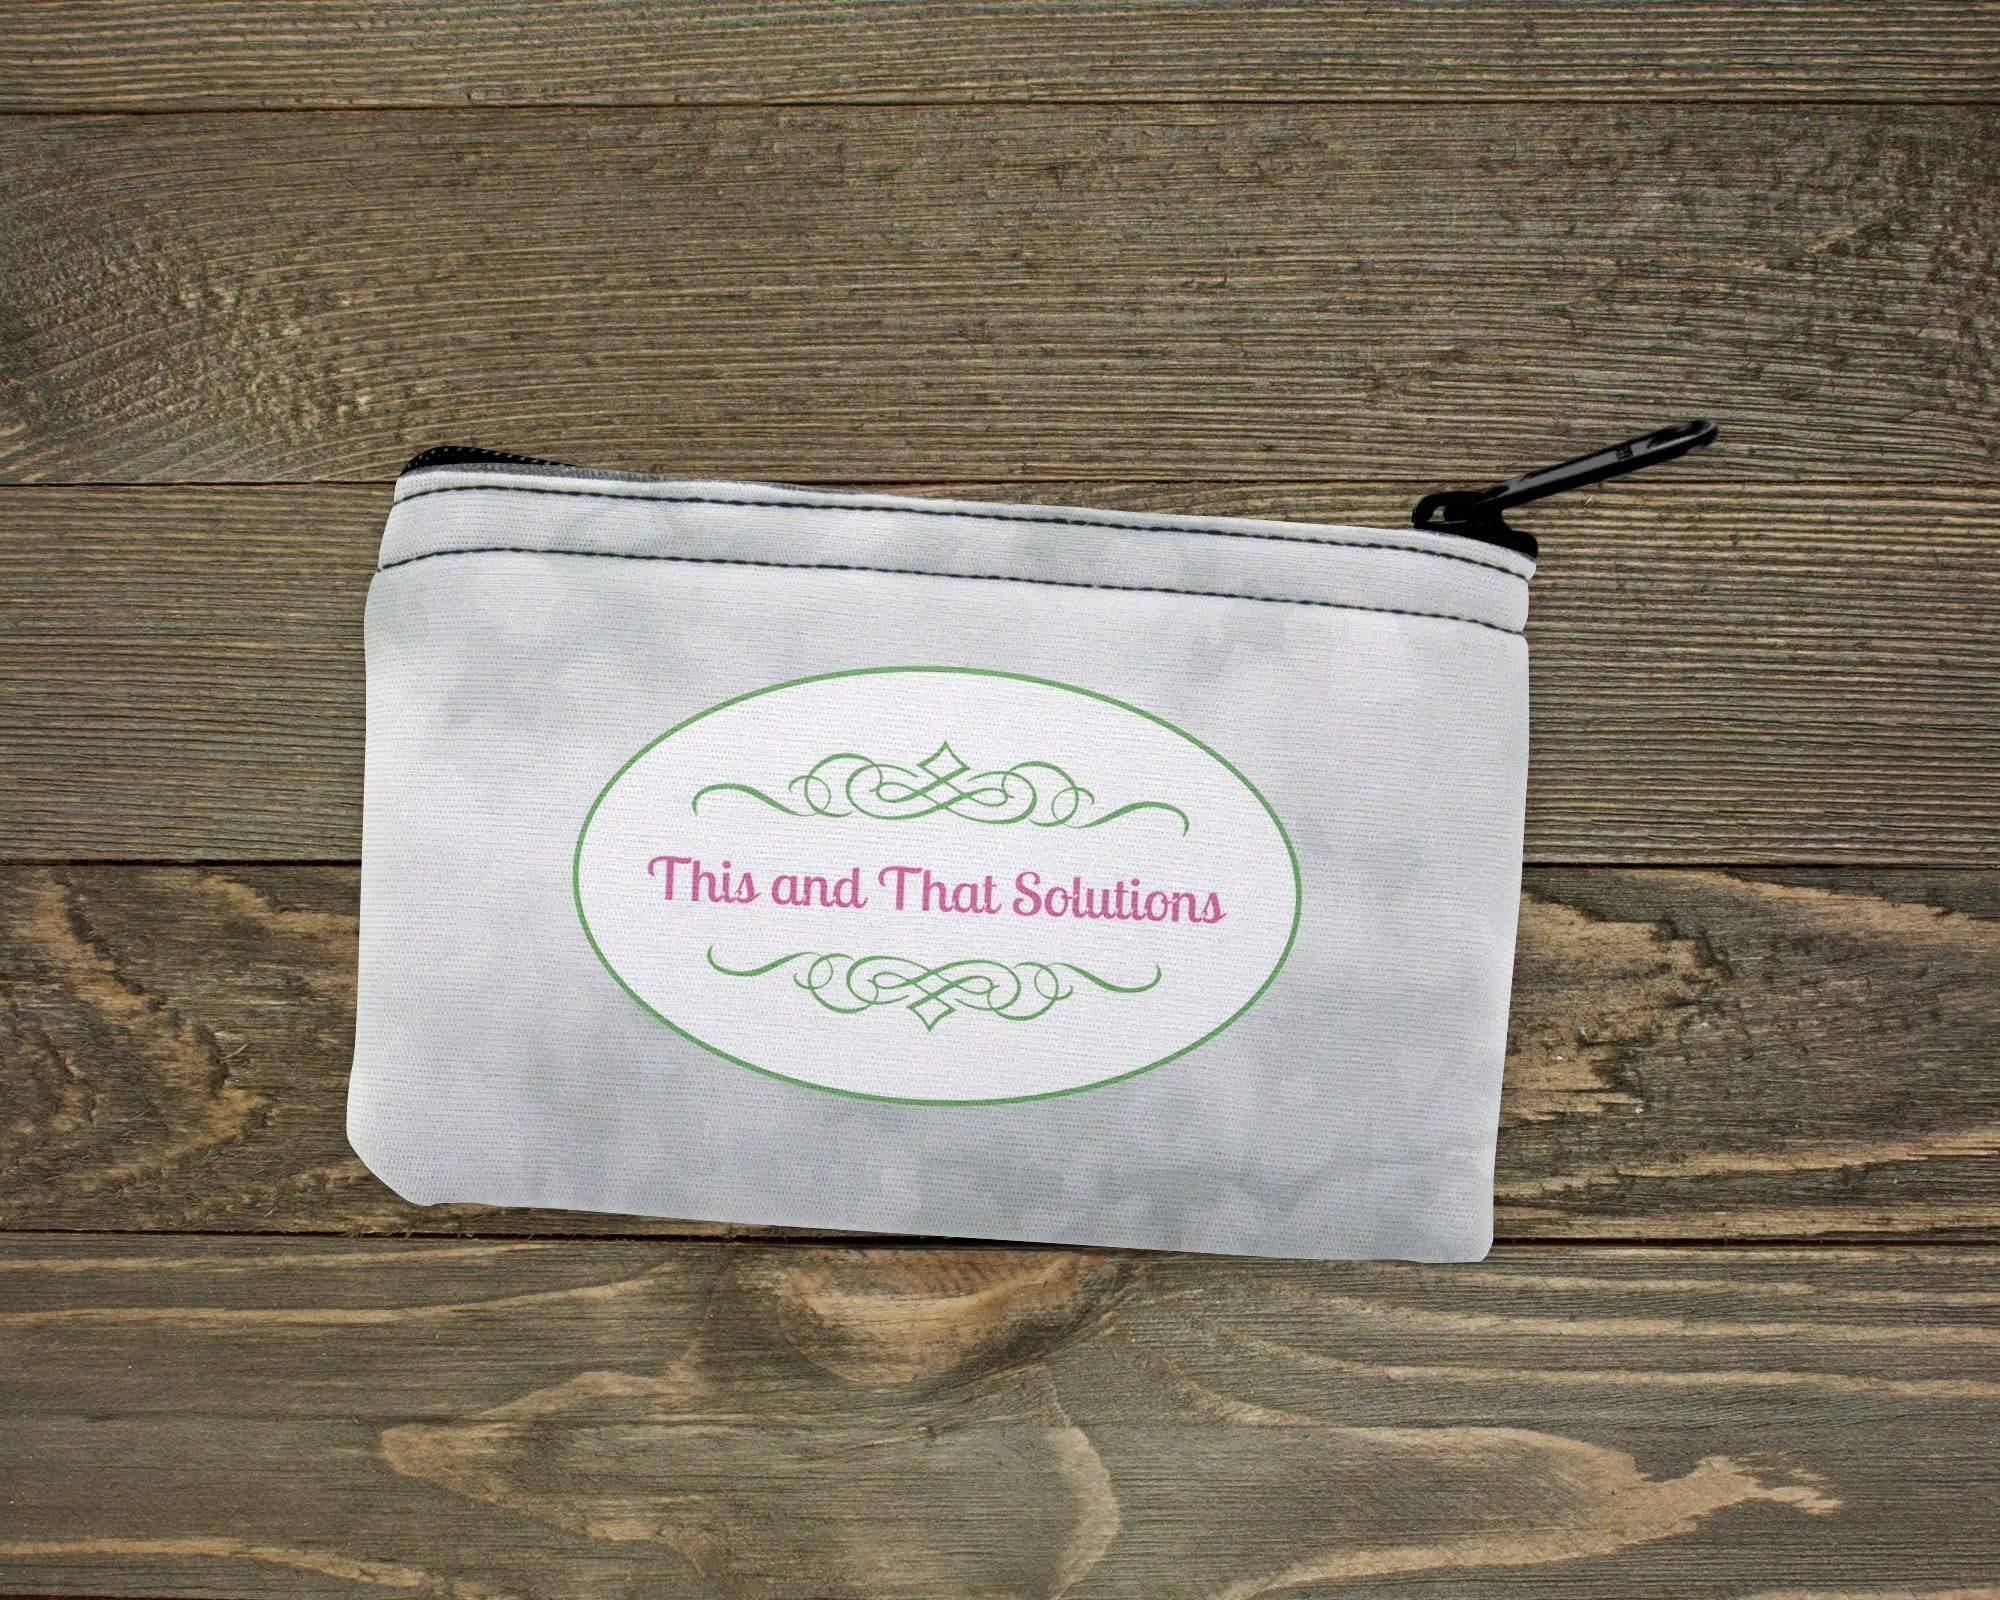 Pouches & Coin Purses | Personalized Coin Purse | Custom Bags | Company Logo | This and That Solutions | Personalized Gifts | Custom Home Décor